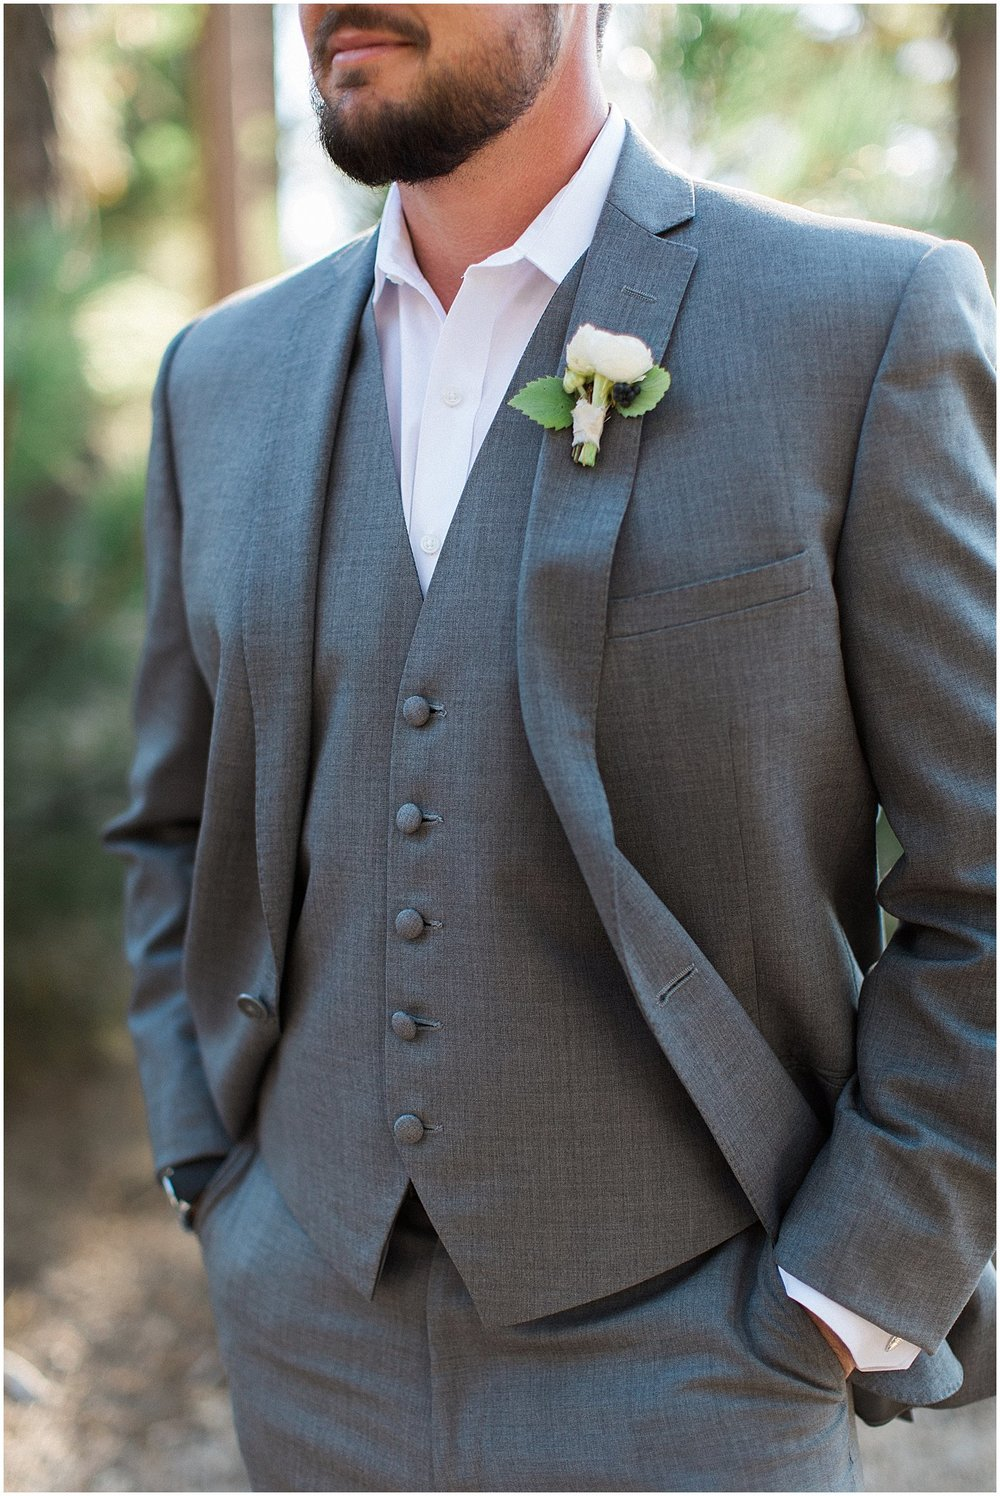 Groom in grey suit from Friar Tux | featured on Style Me Pretty | Arizona Wedding Planner | Megan Dileen Events